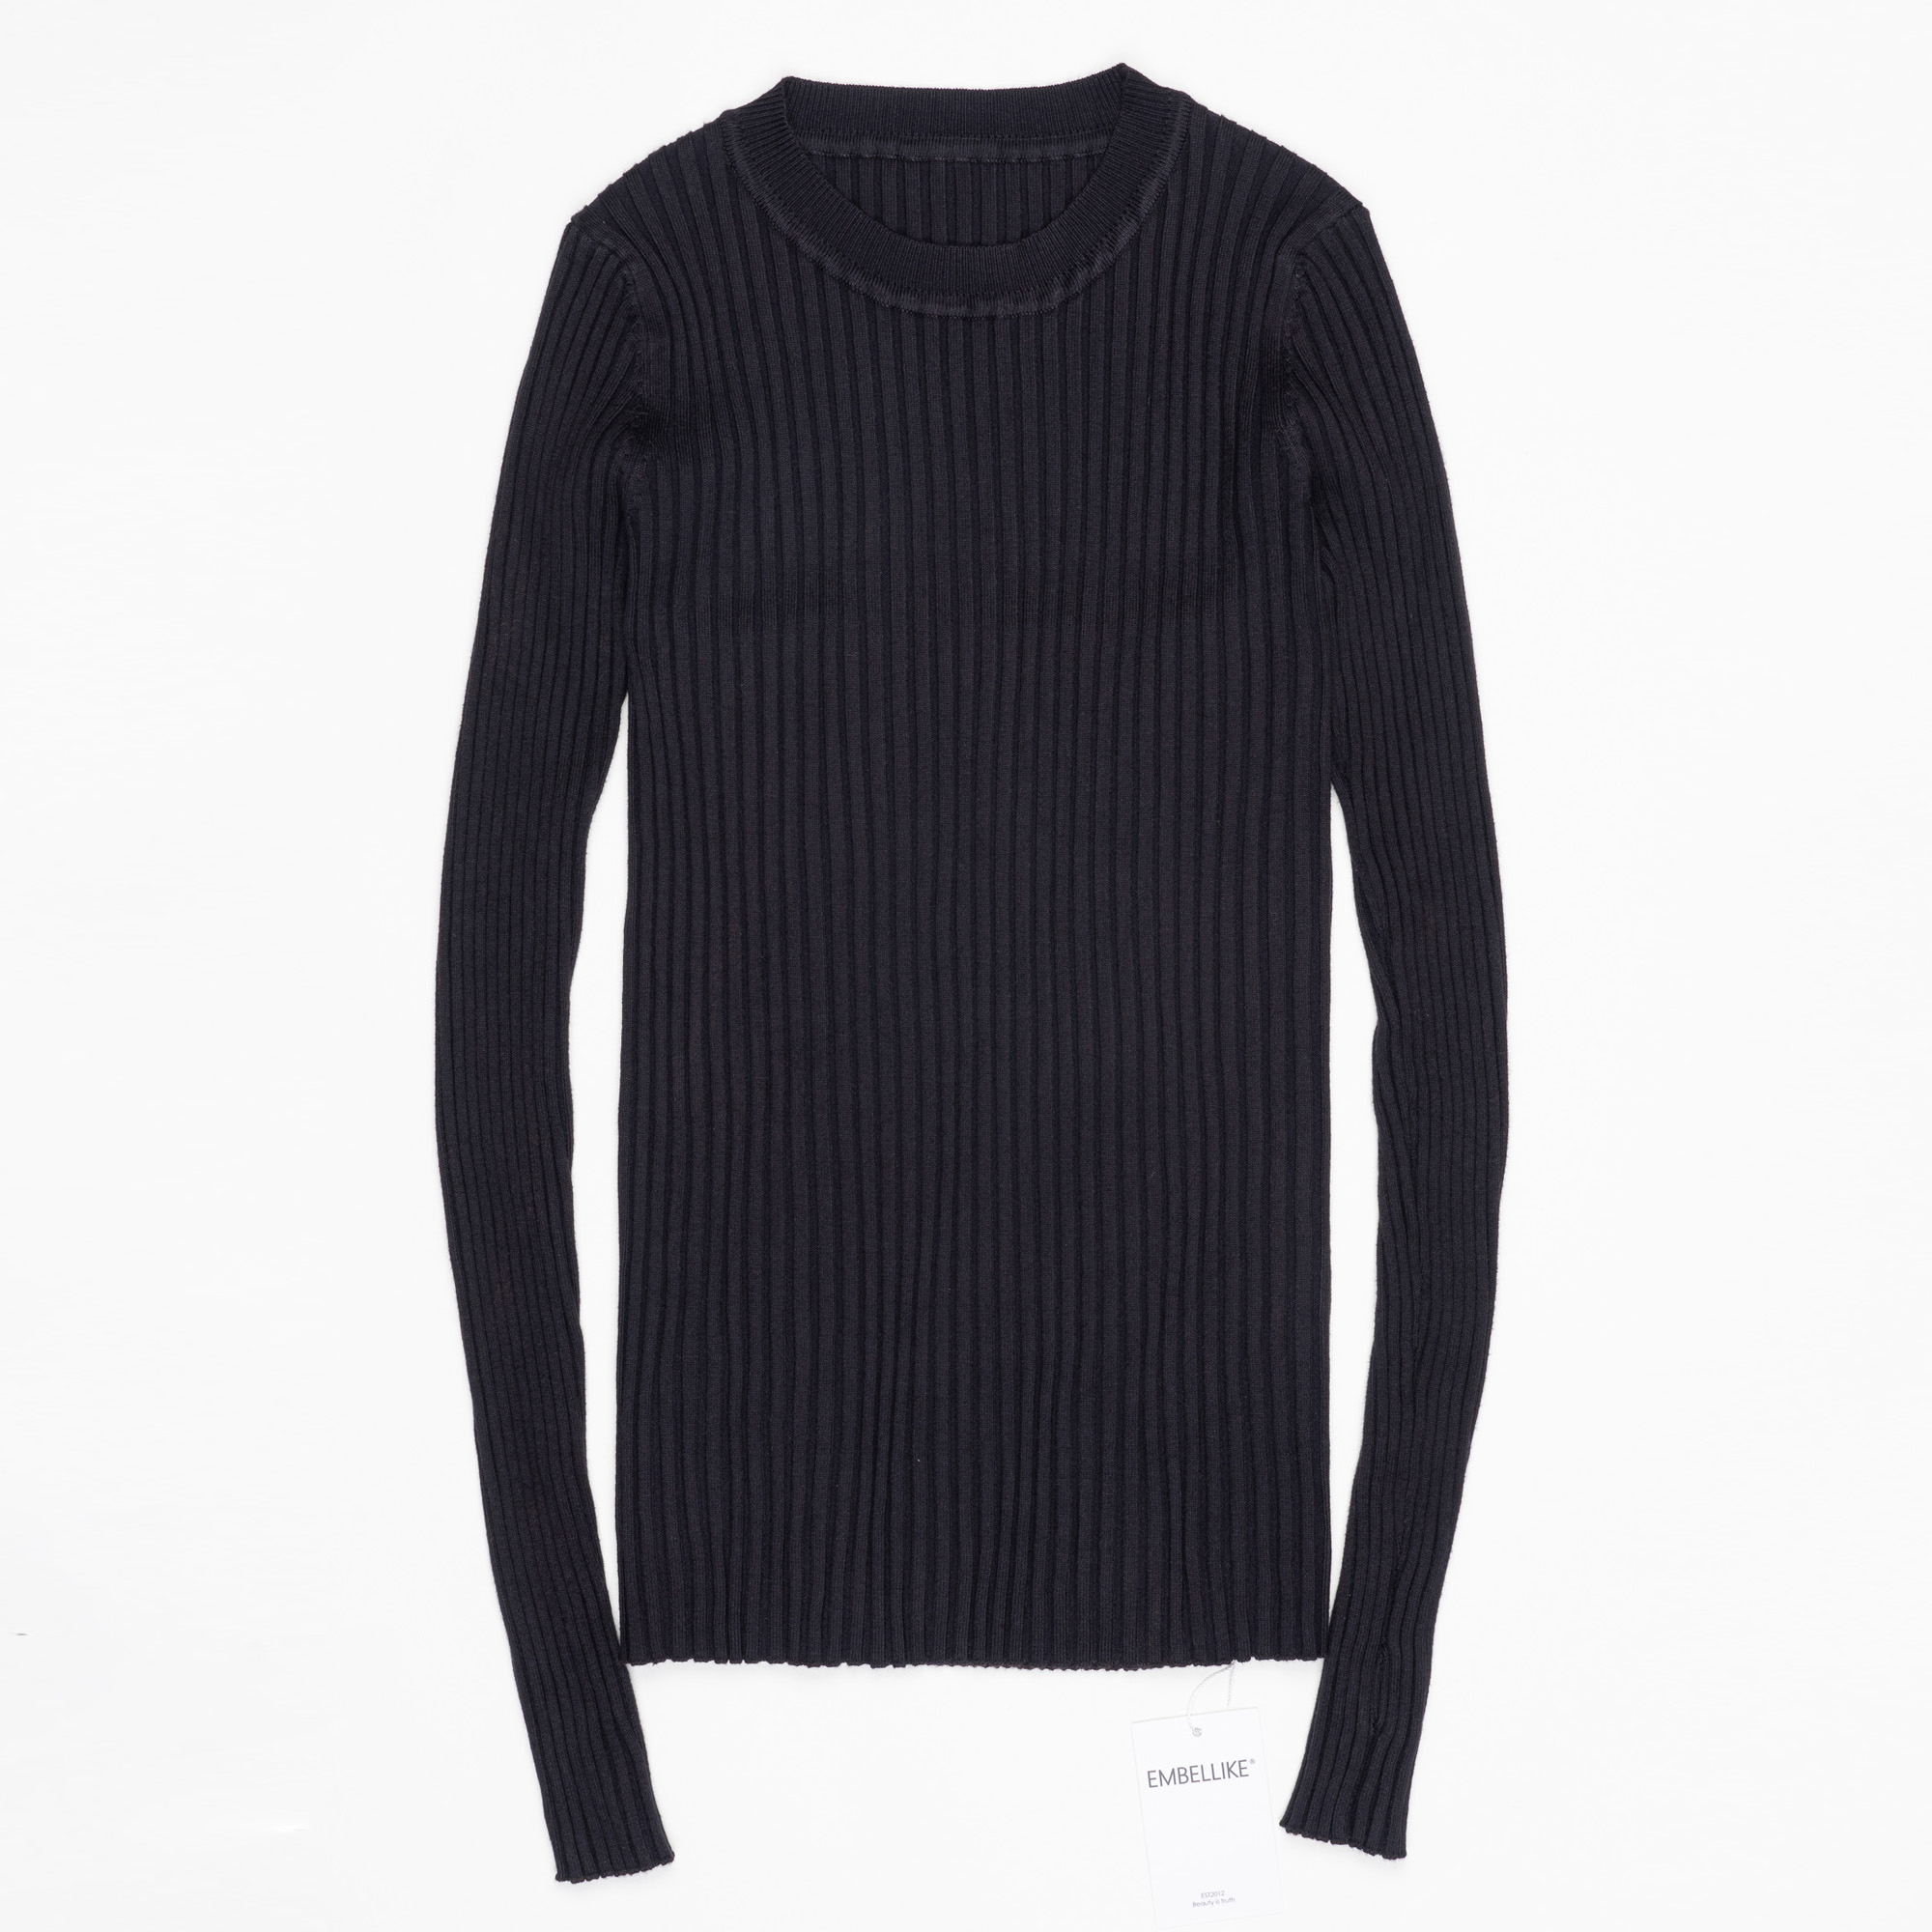 Women Sweater Pullover Basic Ribbed Sweaters Cotton Tops Knitted Solid Crew Neck With Thumb Hole 14